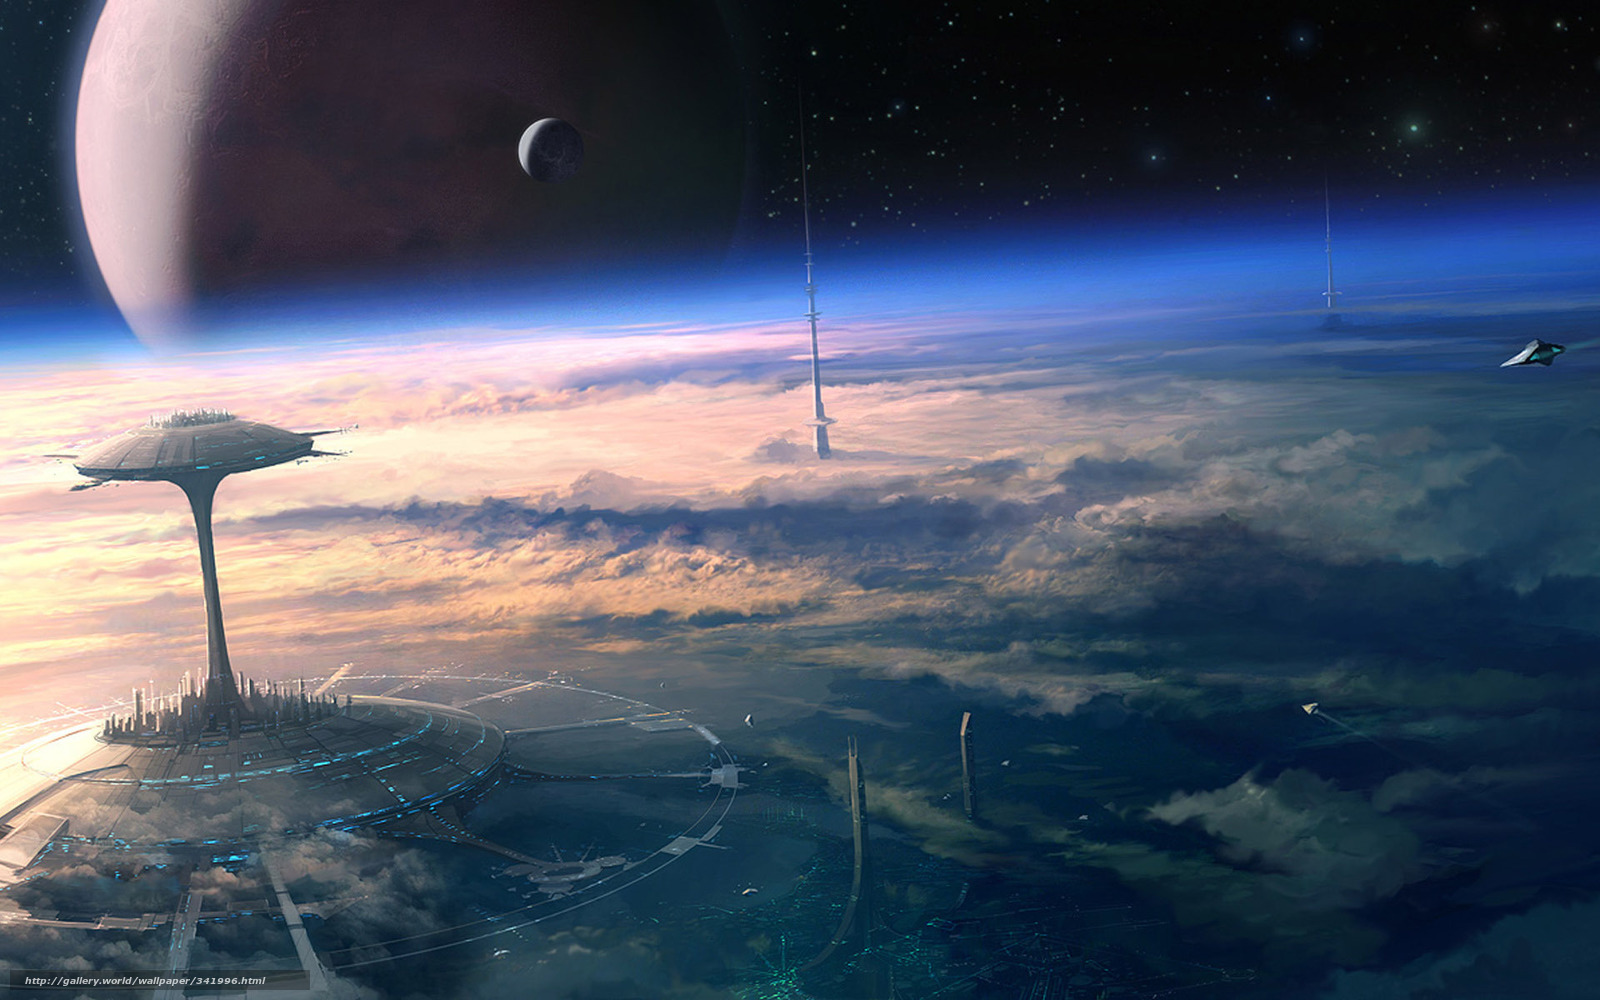 the earths place in space